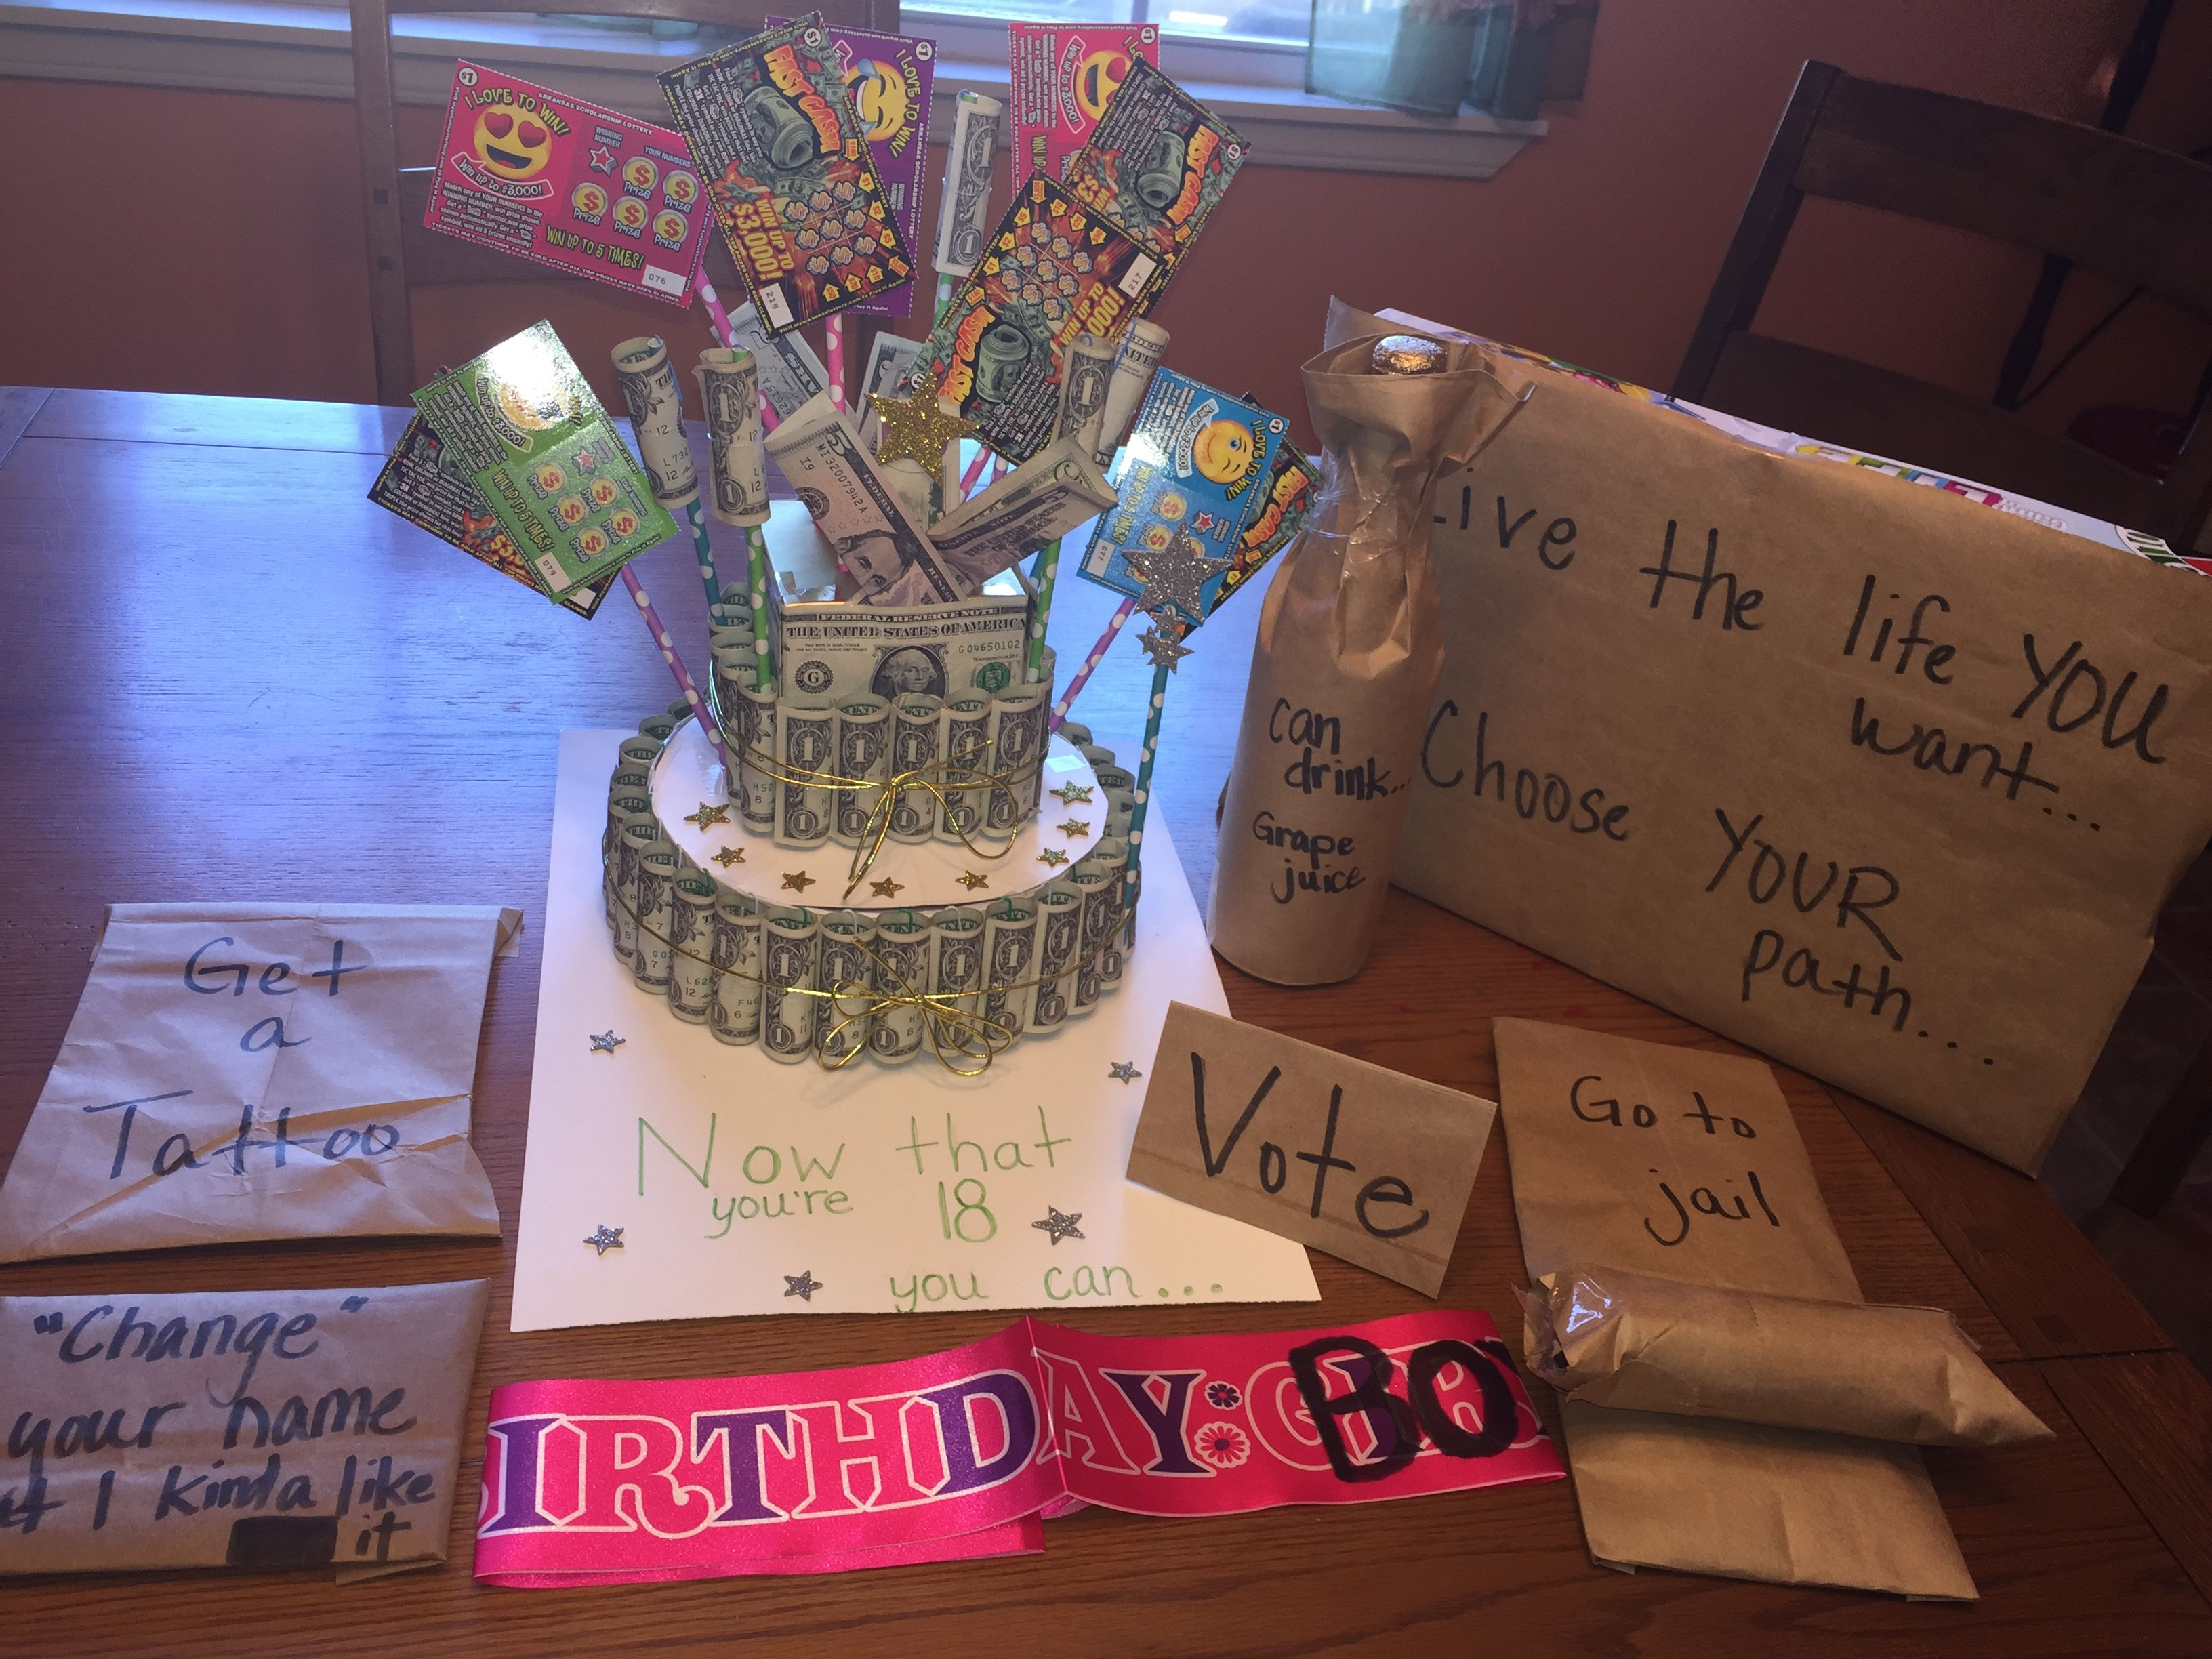 I made this money cake and Now that youre 18 you can gifts for my